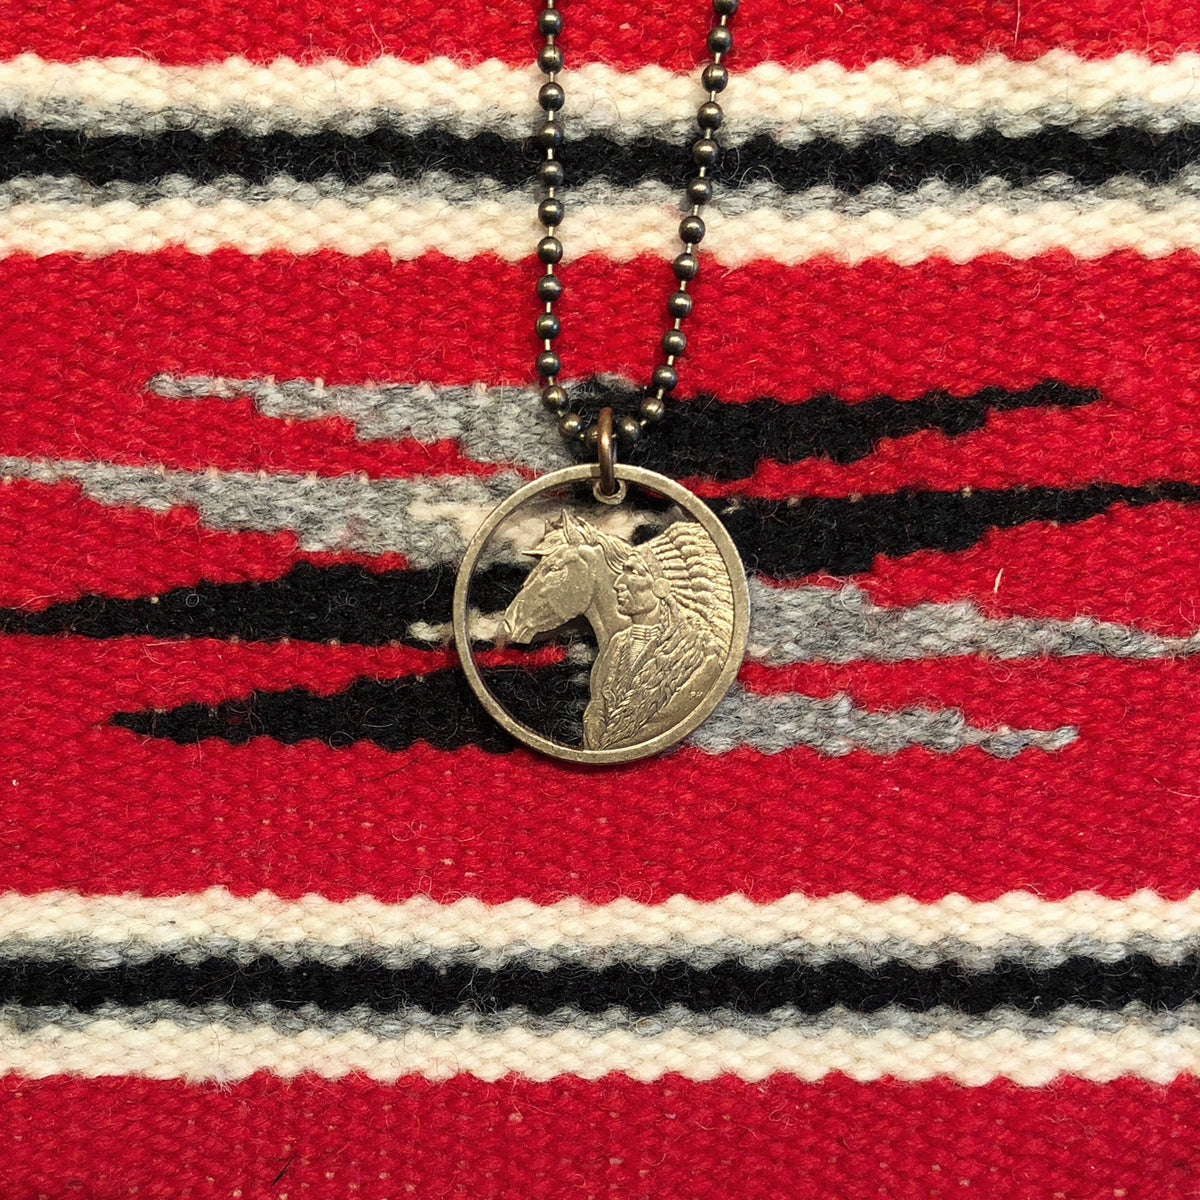 A TSY Hand-Cut Native American Indian + Horse Bronze Coin Pendant Necklaces, Jewelry, final sale!